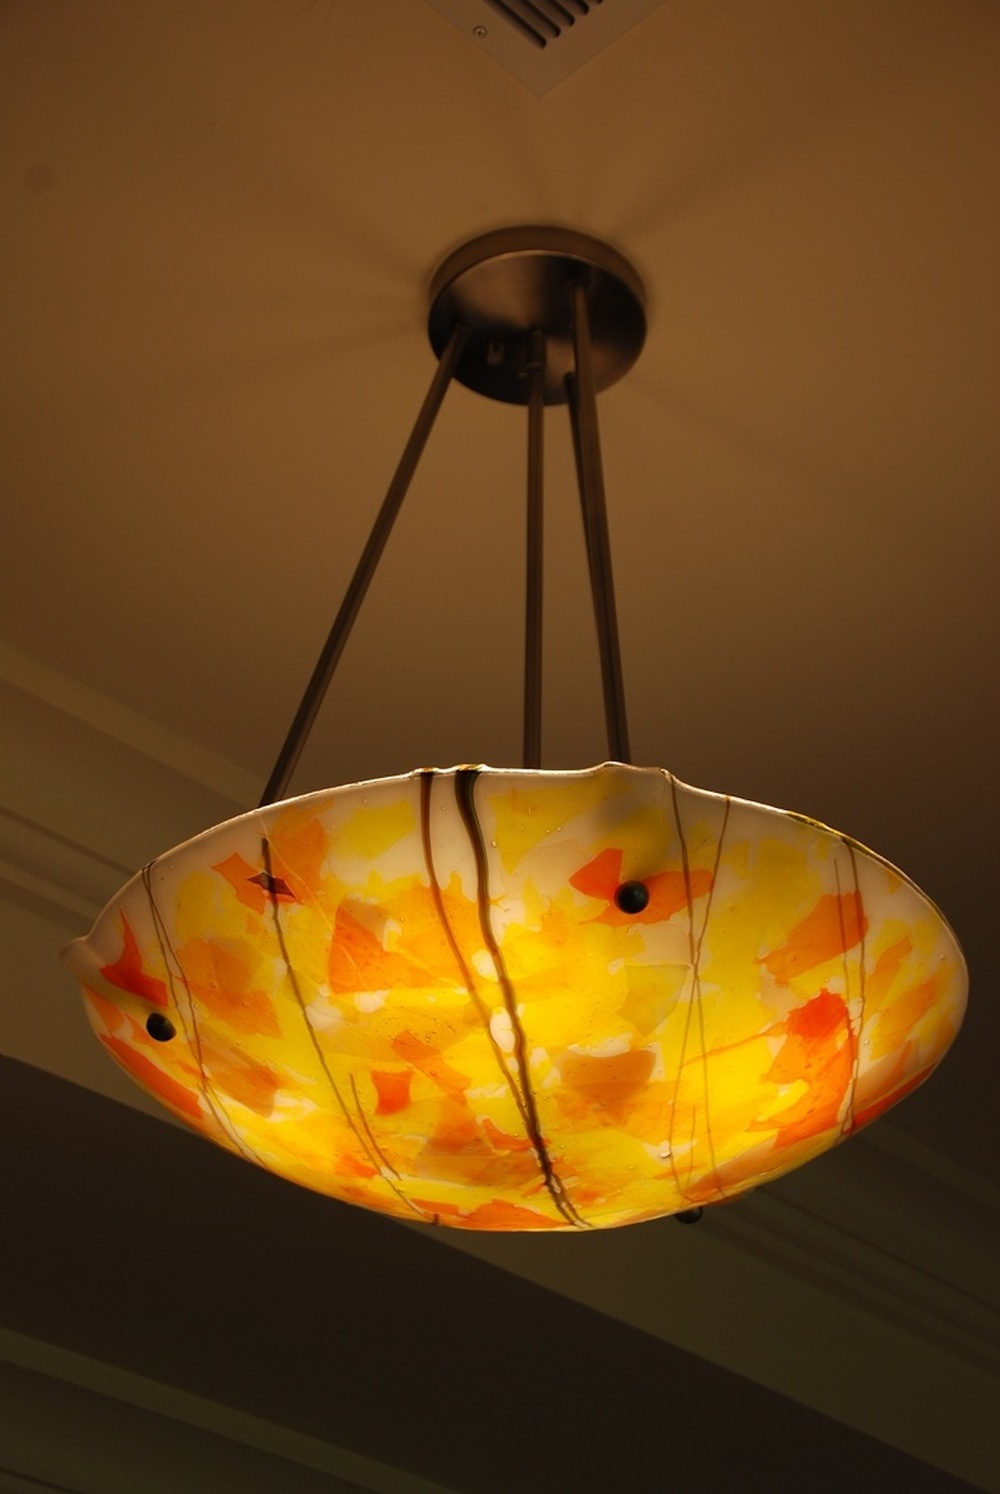 #11 Ceiling Lamp confetti dome by artist rick strini copy.jpg